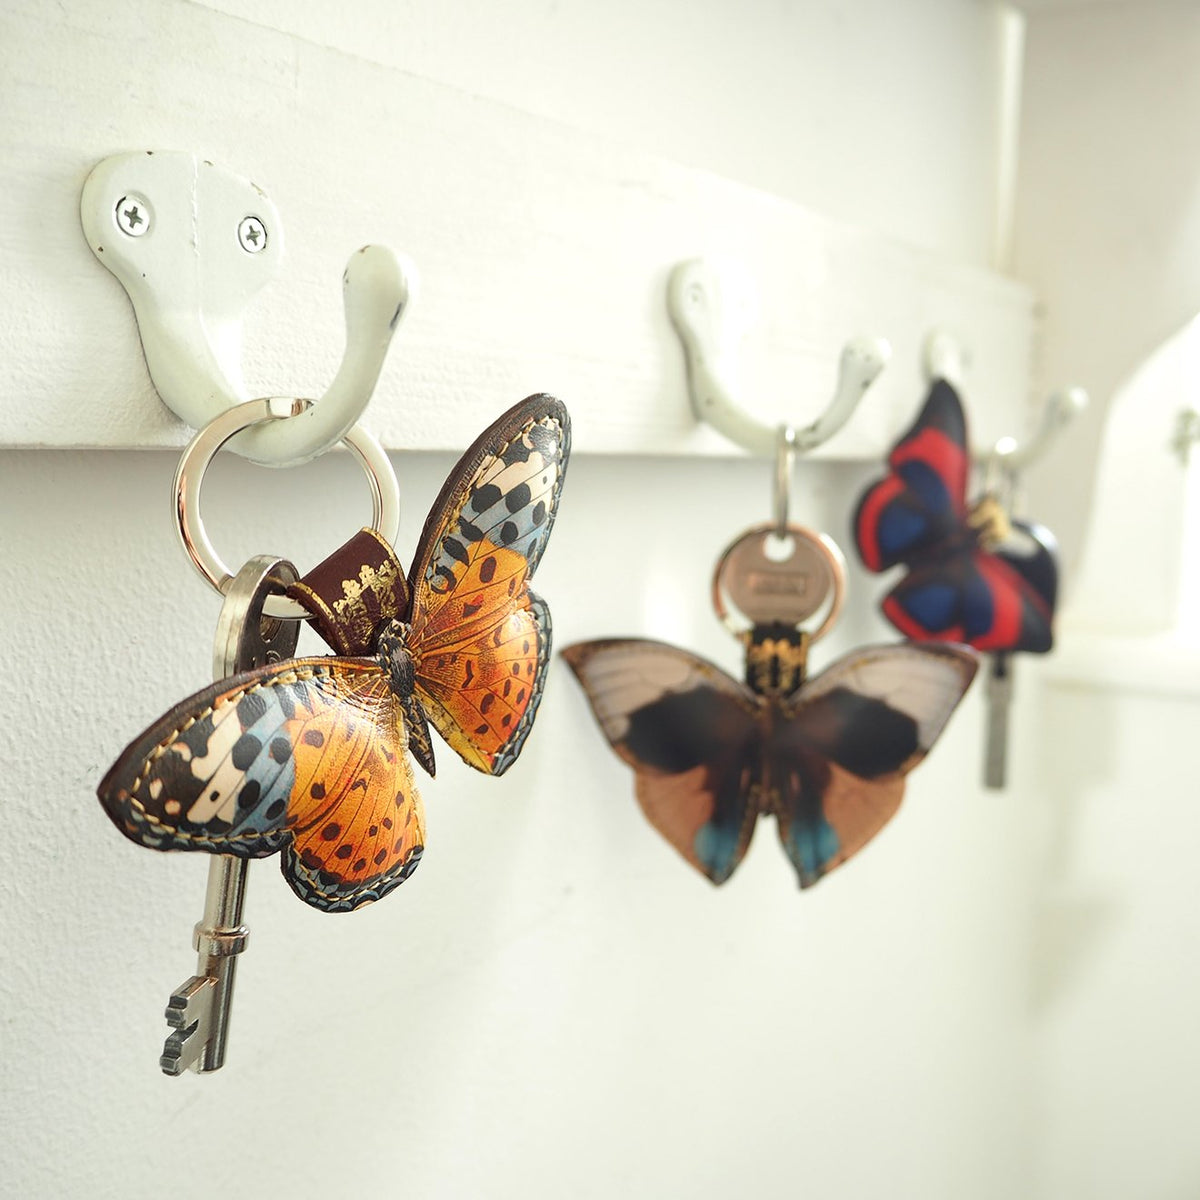 Butterfly key rings and key chains: Nature gifts for women by UK designer Tovi Sorga